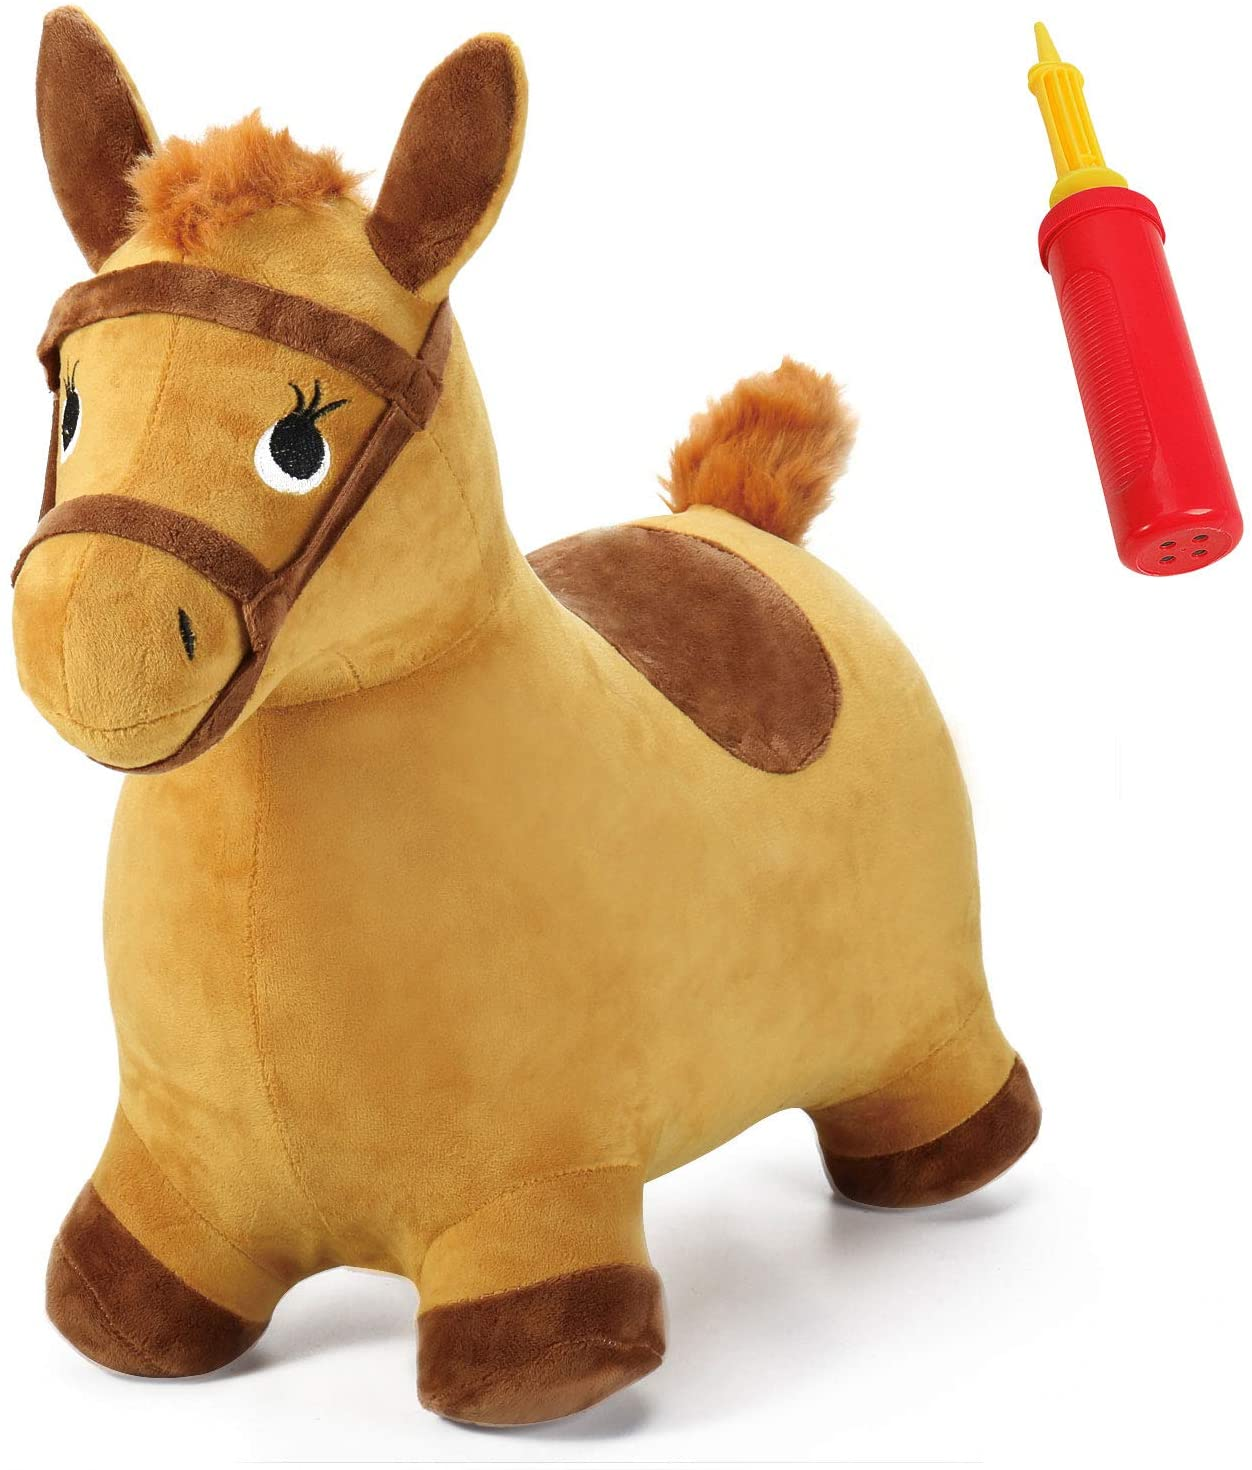 iPlay-iLearn-Bouncy-Pals-Yellow-Hopping-Horse